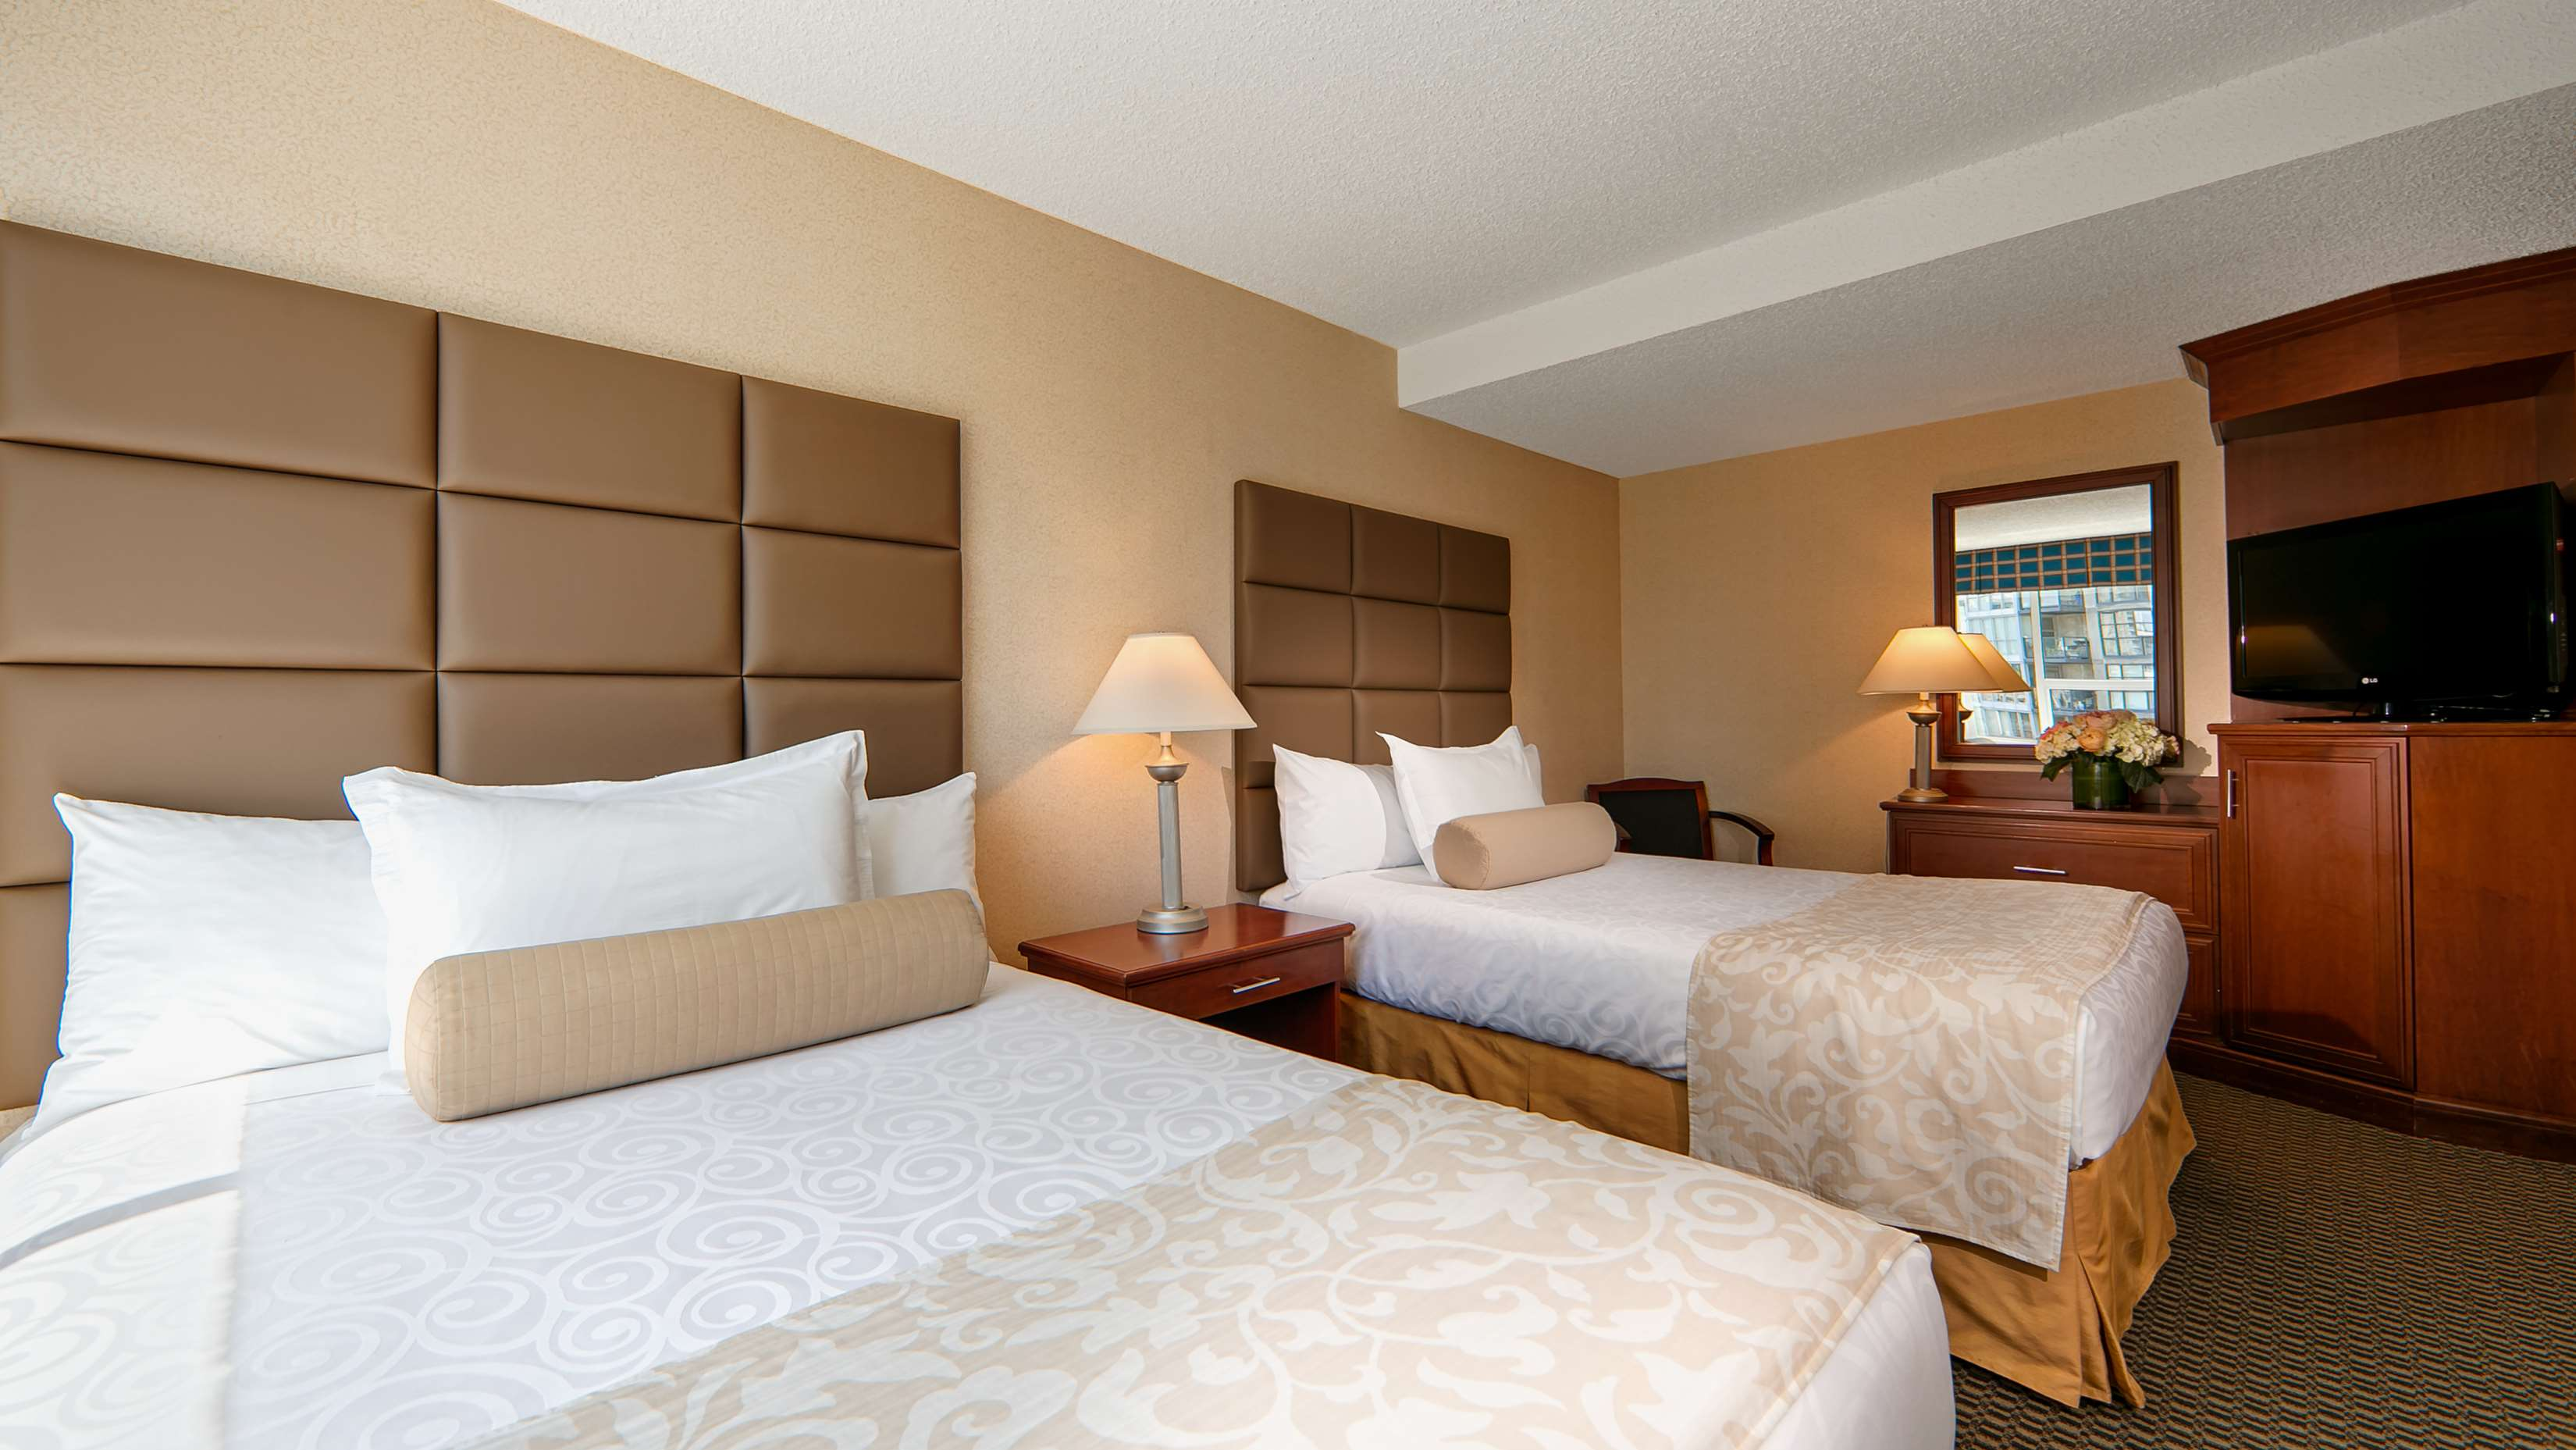 Best Western Plus Chateau Granville Hotel & Suites & Conference Ctr. in Vancouver: Deluxe Two Double Bed Guest Room